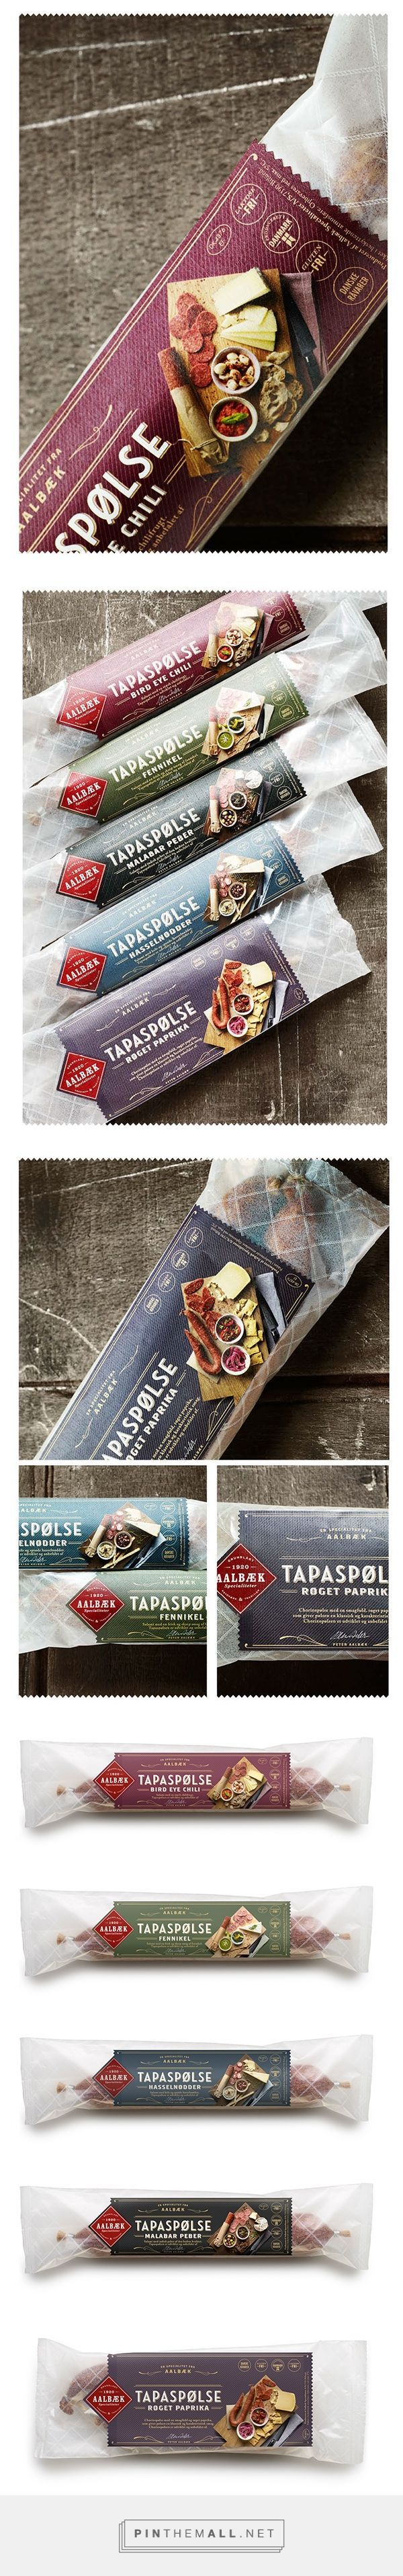 Tapas Aalbæk specialiteter #packaging #design: